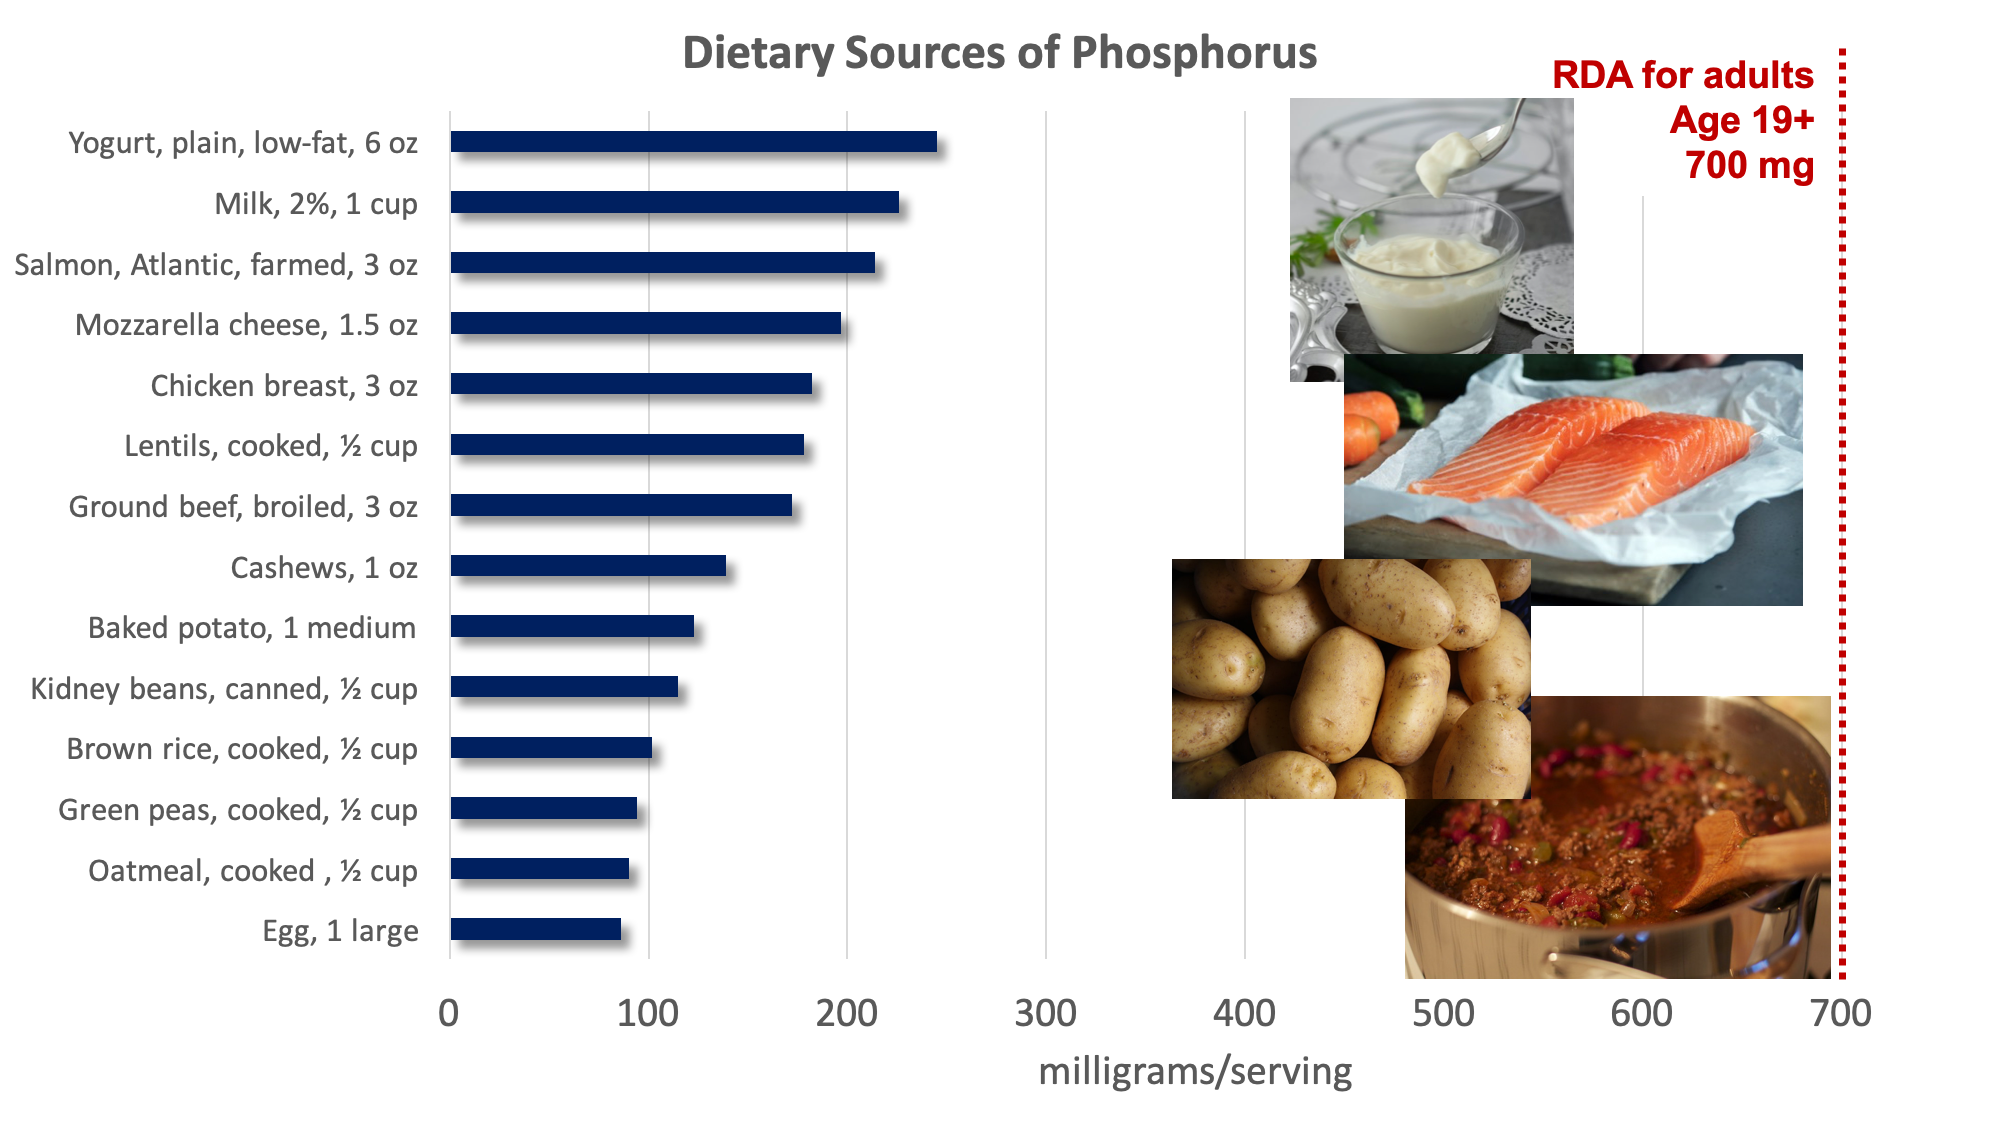 Bar graph showing dietary sources of phosphorus compared with the RDA for adults of 700 mg. Top sources include cheese, yogurt, milk, meat, fish, nuts, potatoes, beans, whole grains, and eggs. Food sources pictured include yogurt, salmon, potatoes, chili with meat and beans.